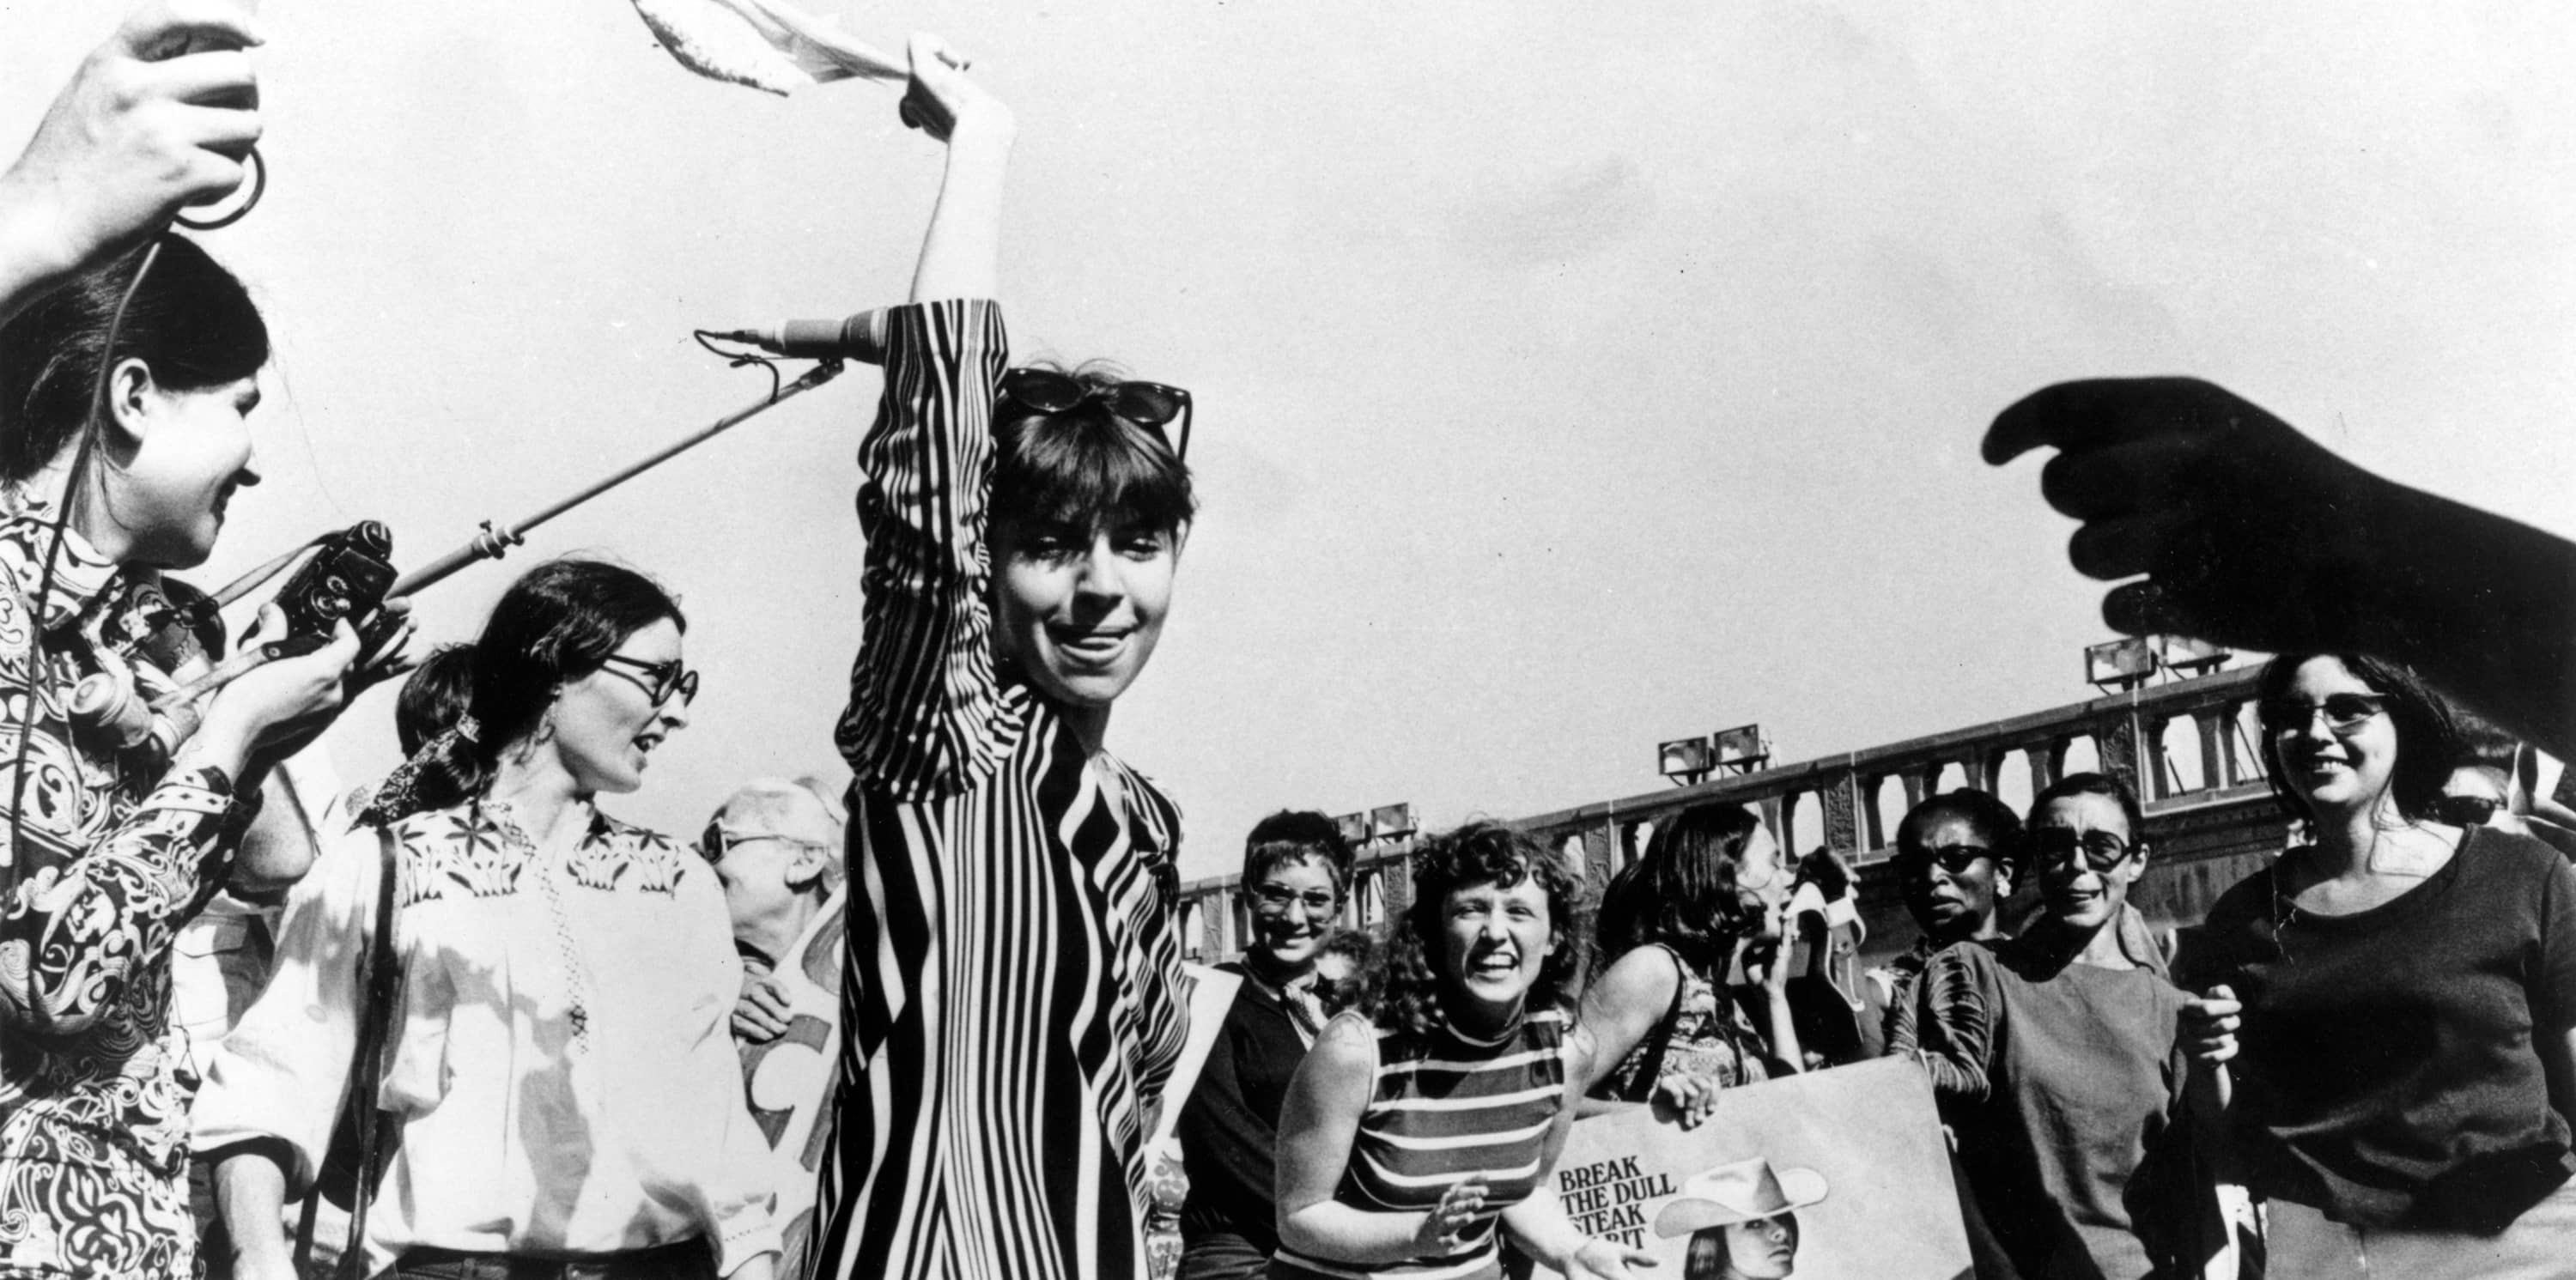 Robin Morgan - Activism - Miss America Pageant Protest, Atlantic City, 1968